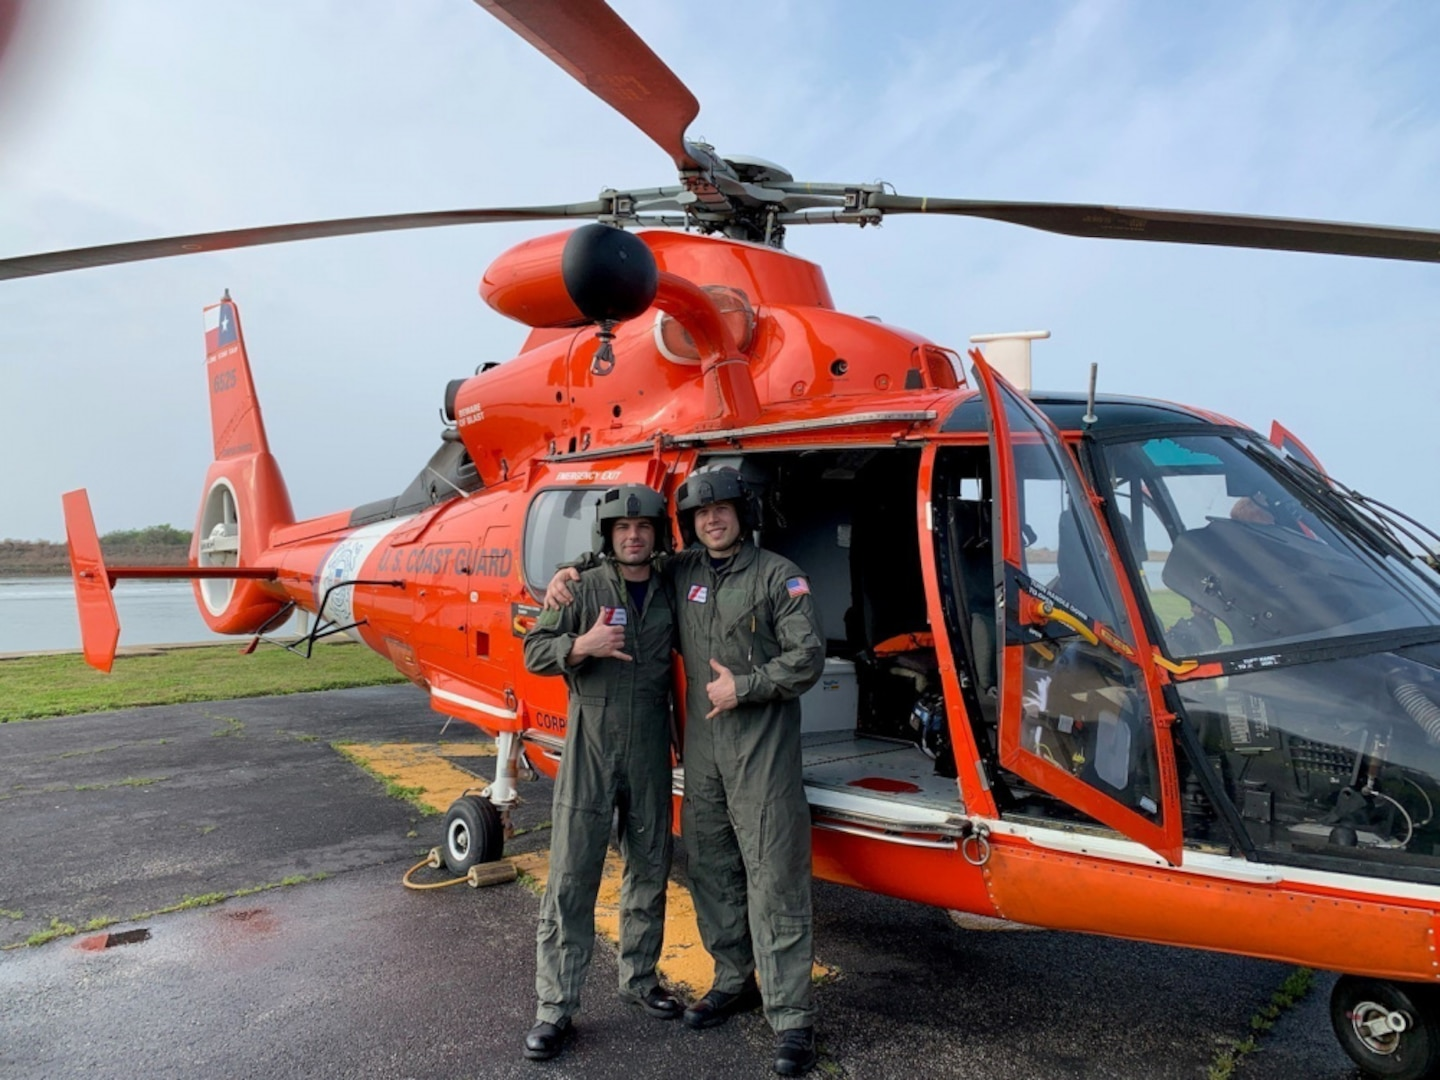 Second Class Petty Officers Casey Zachry, left, and Cody Childress, both health services technicians, prepare to depart from Coast Guard Station Port O'Connor, Texas March 24, 2021. Earlier that day, Zachry and Childress administered Covid-19 vaccinations to Coast Guard members at the station. U.S. Coast Guard photo.